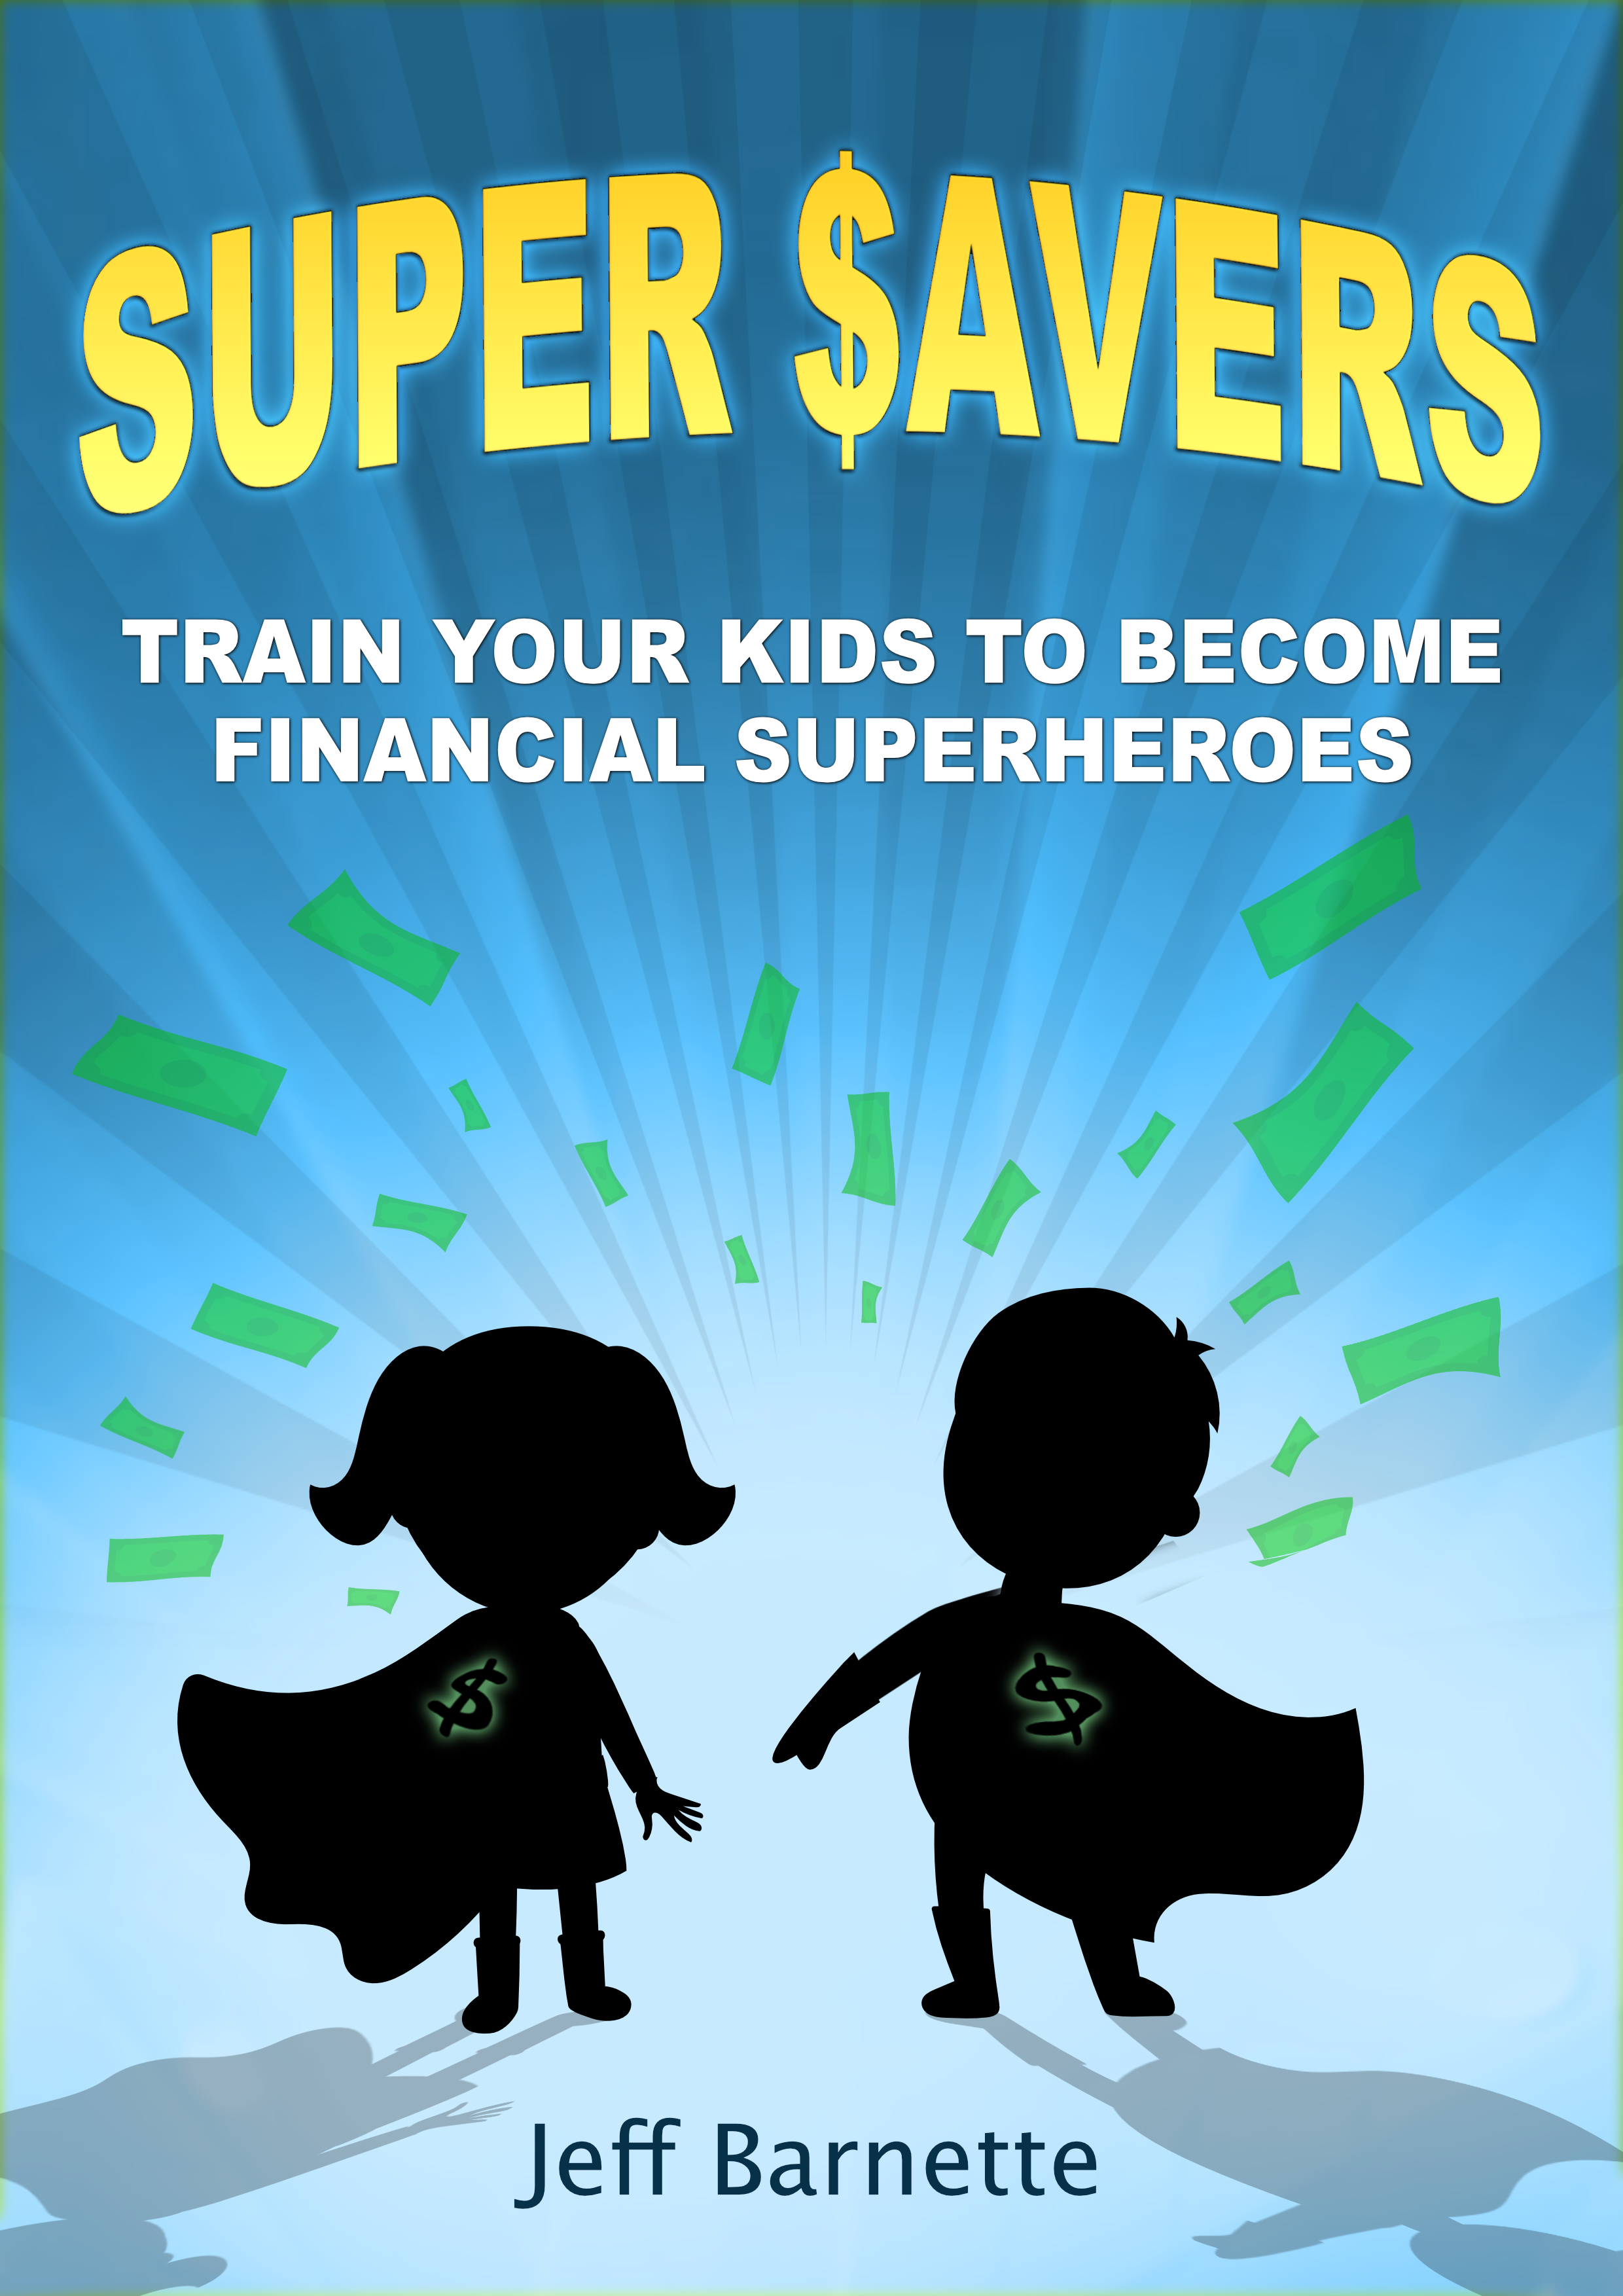 Super Savers: Train Your Kids to Become Financial Superheroes